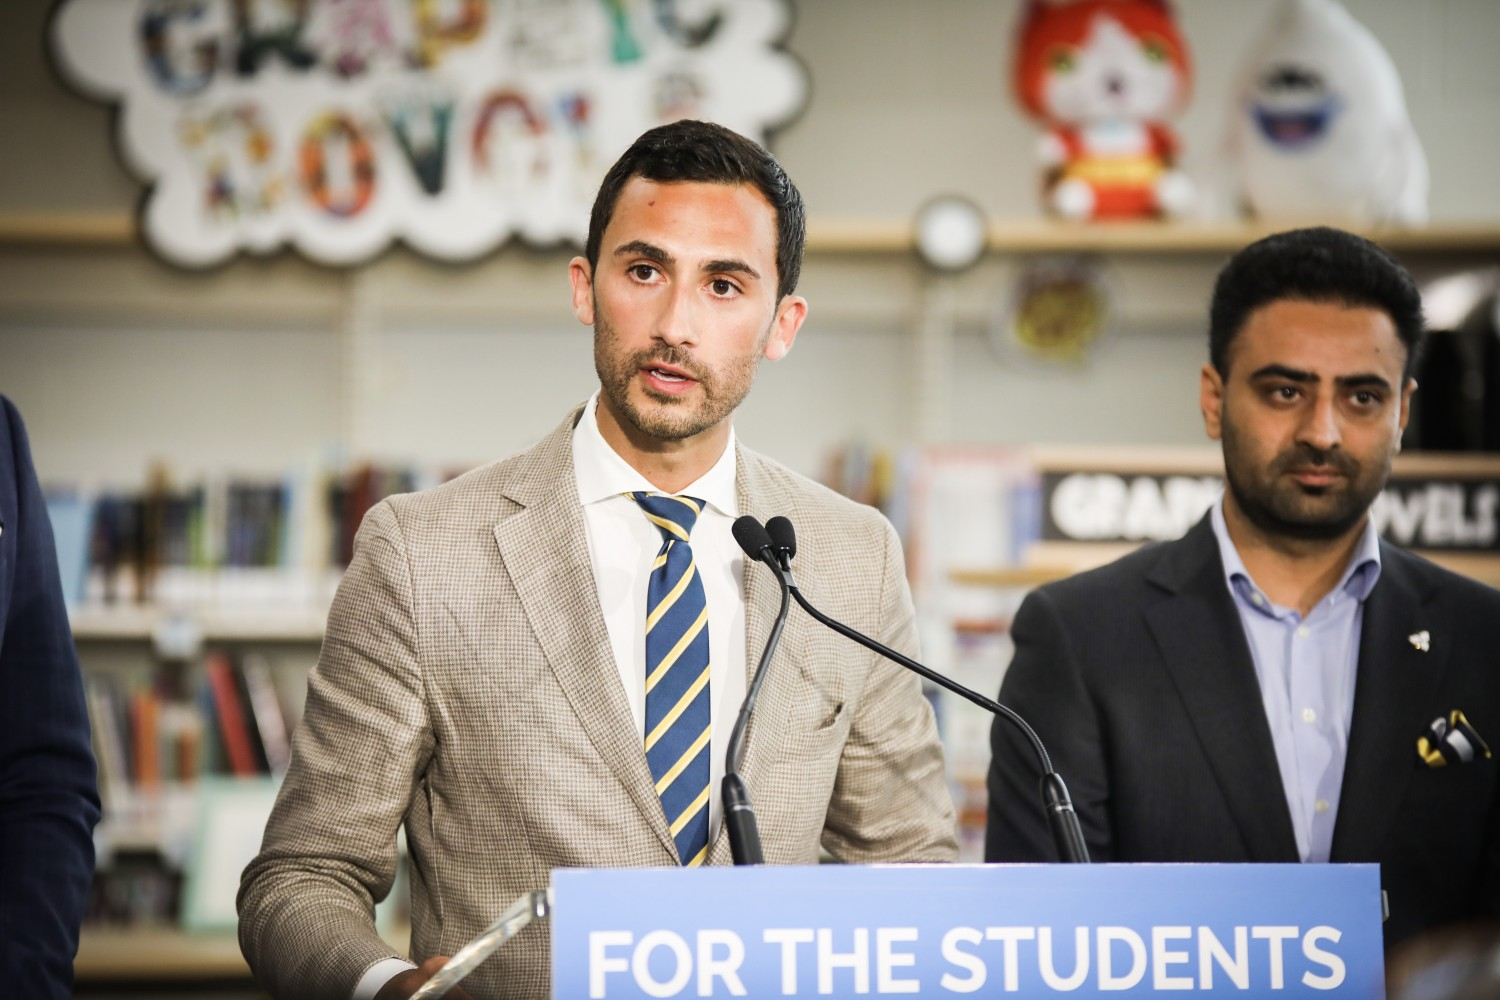 Education minister offers assurance to parents despite rocky negotiations with teachers